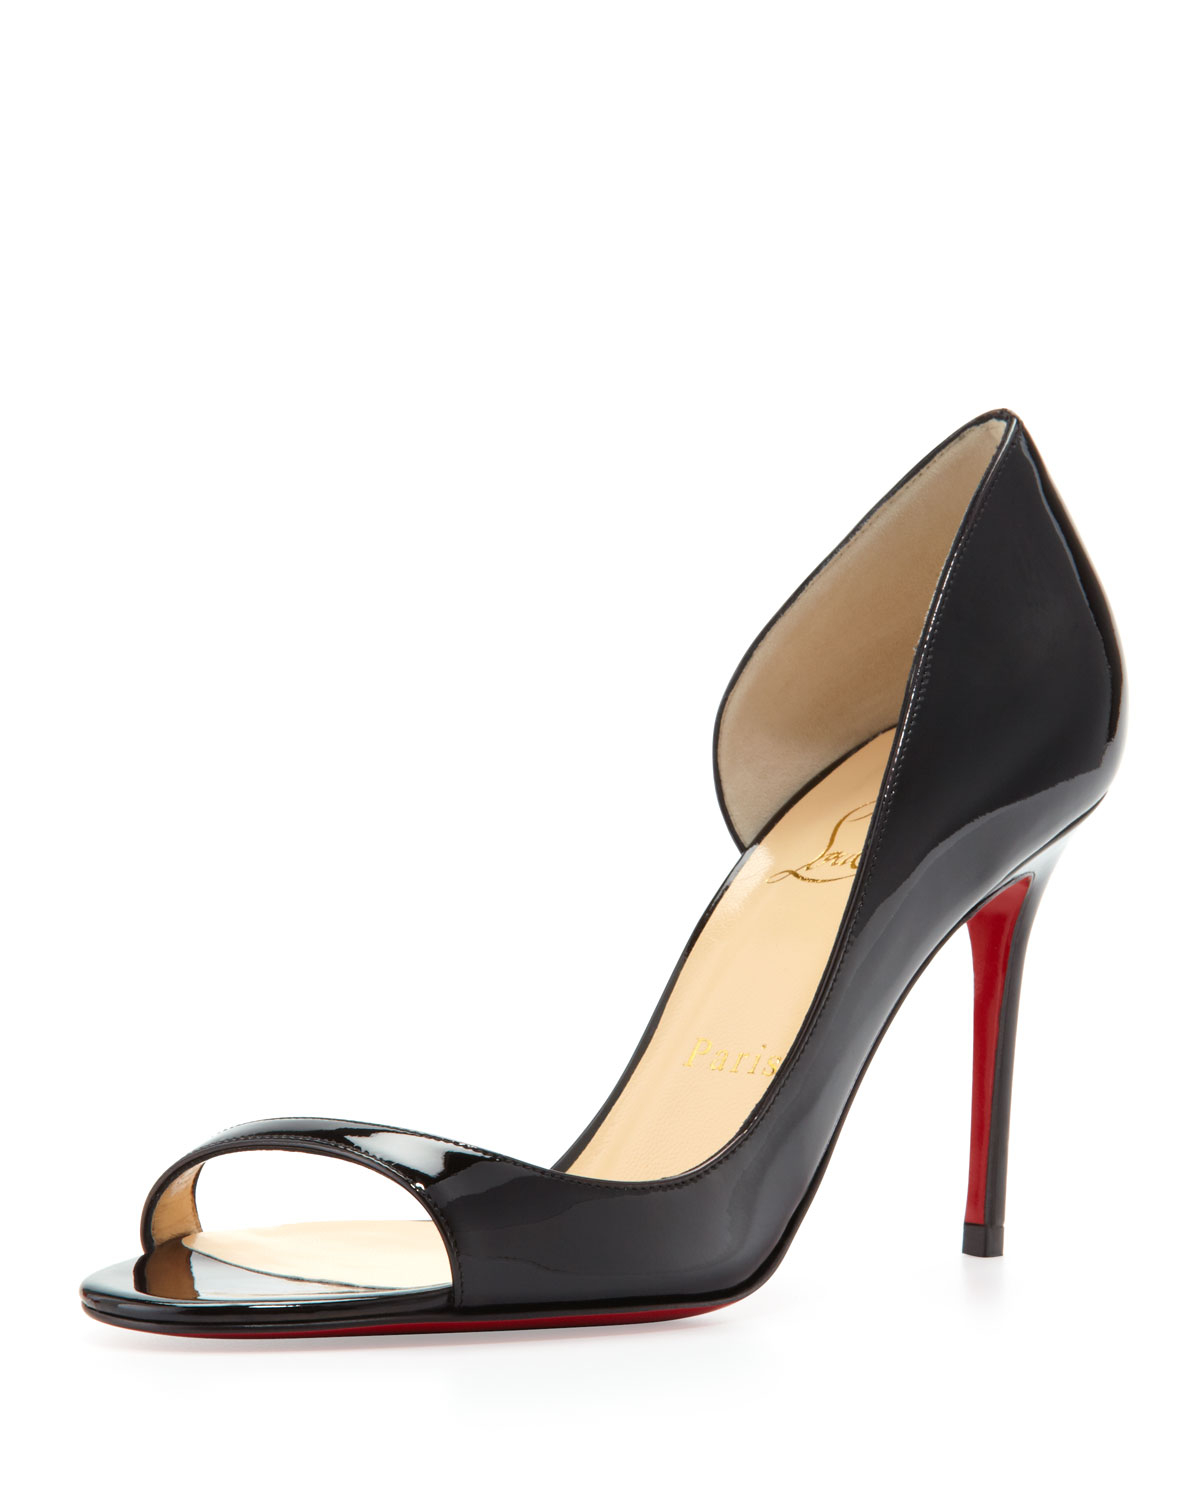 buy replica shoes online - christian louboutin peep-toe d'Orsay pumps Black patent leather ...